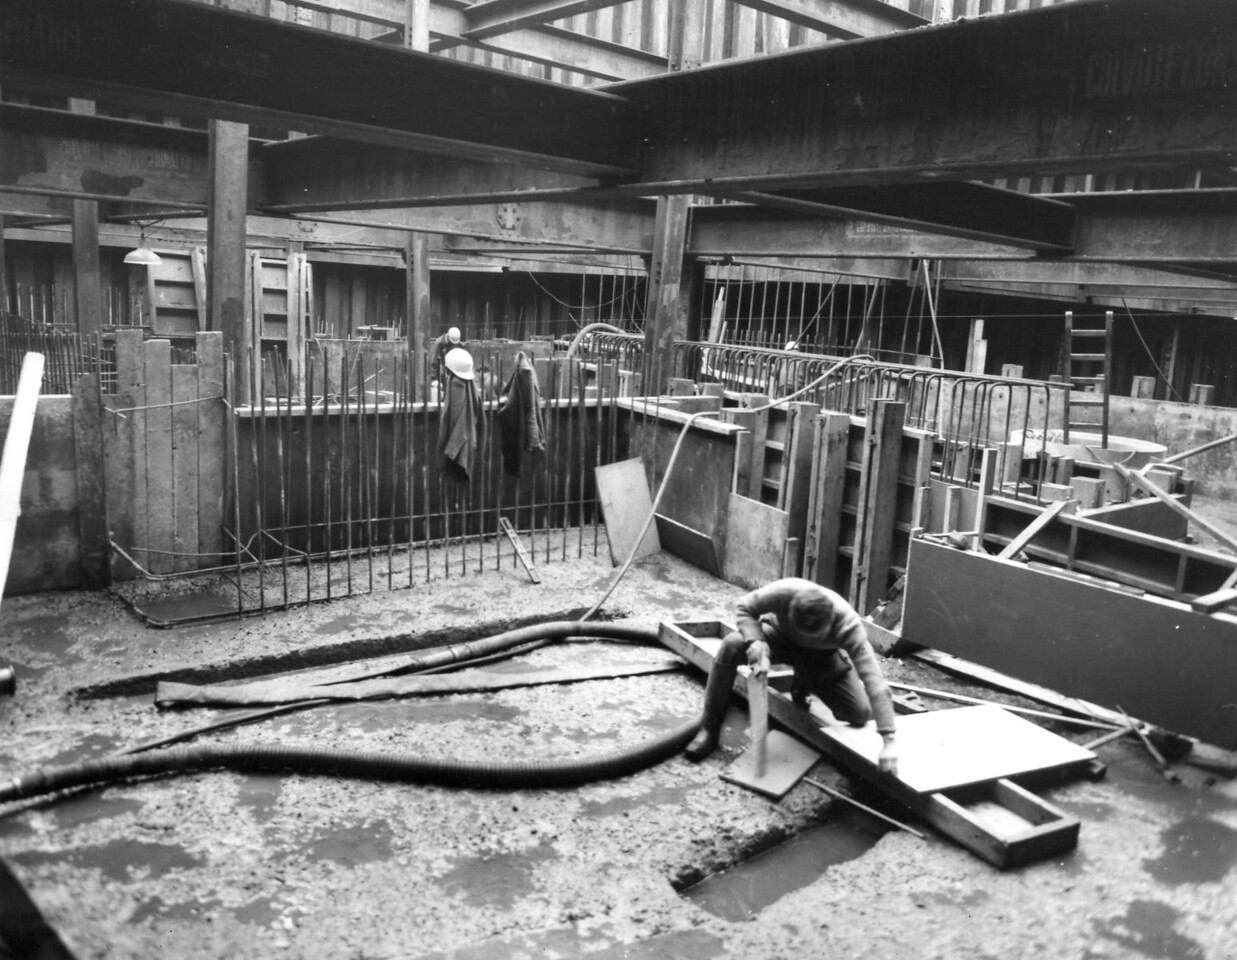 D058	Entrance works - east roundhead, preparations in progress for concreting up to pumphouse floor level    27/11/1962